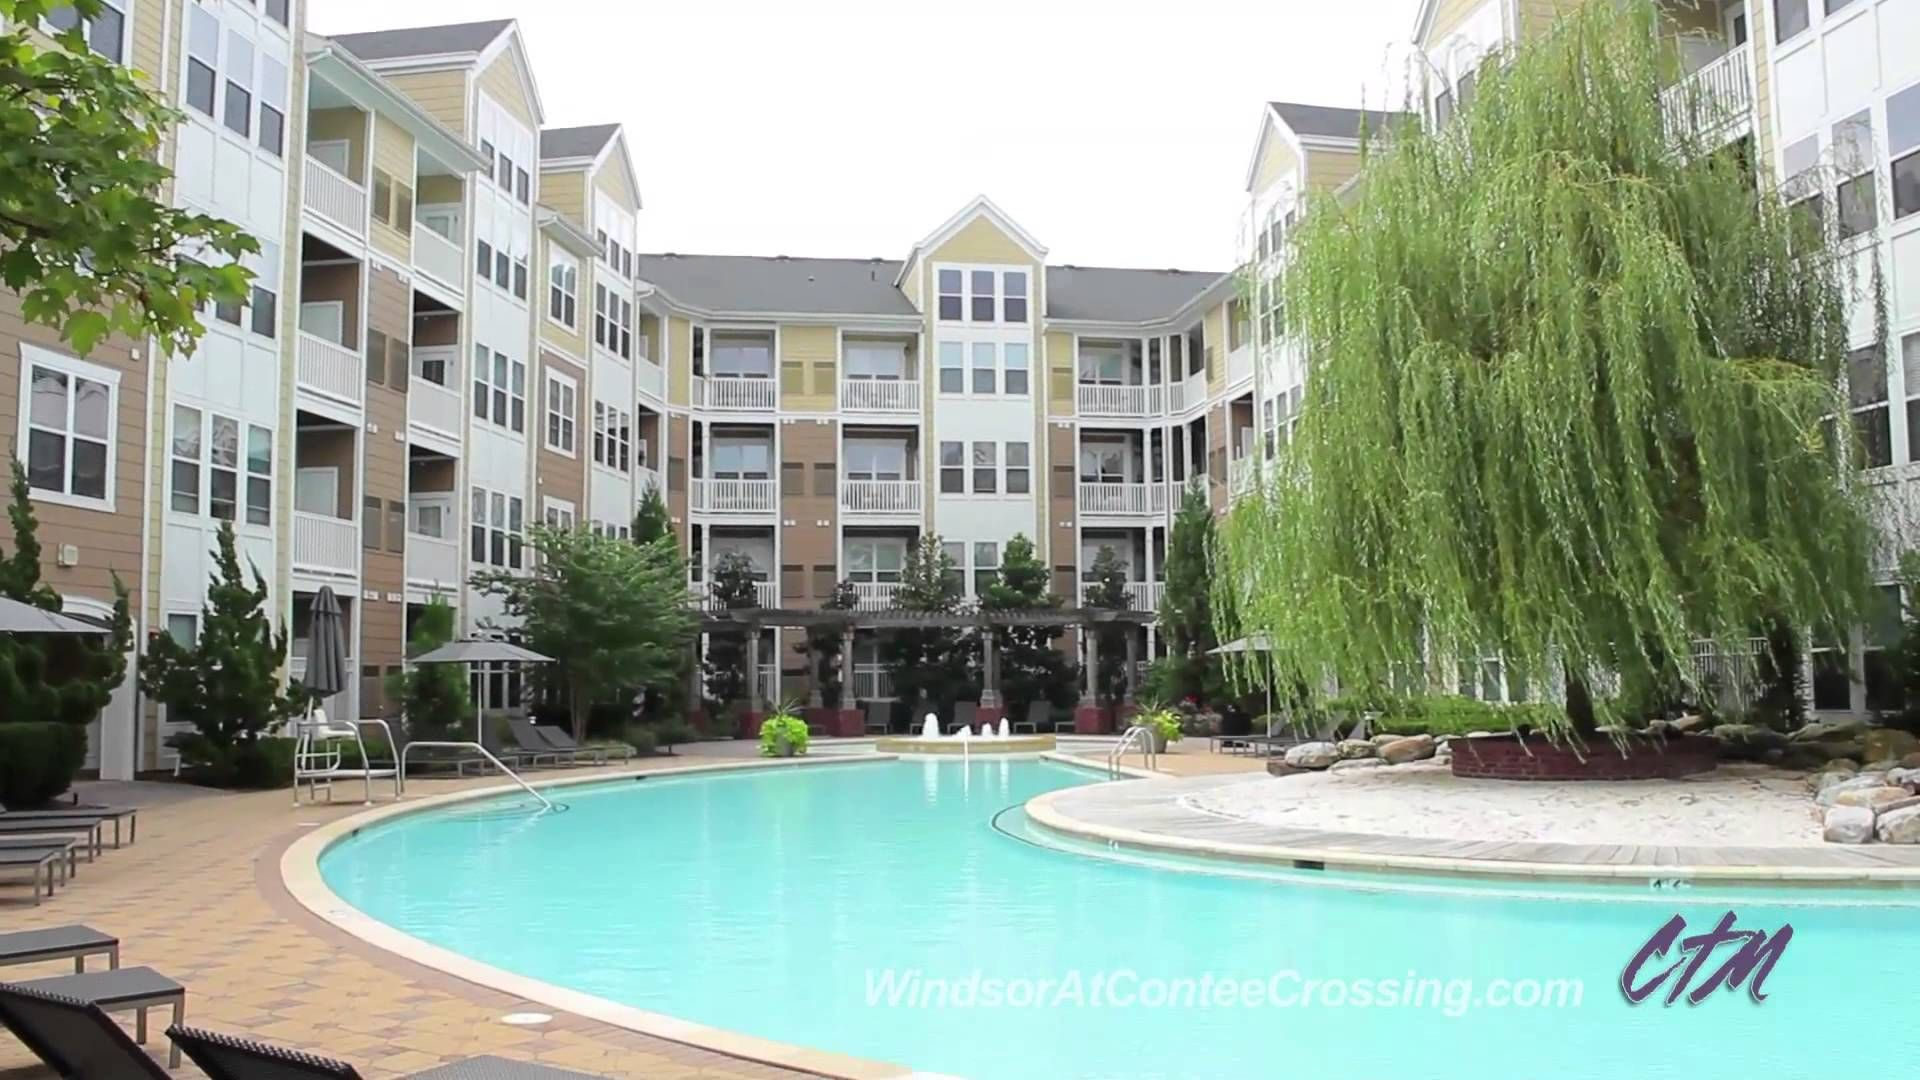 Windsor At Contee Crossing